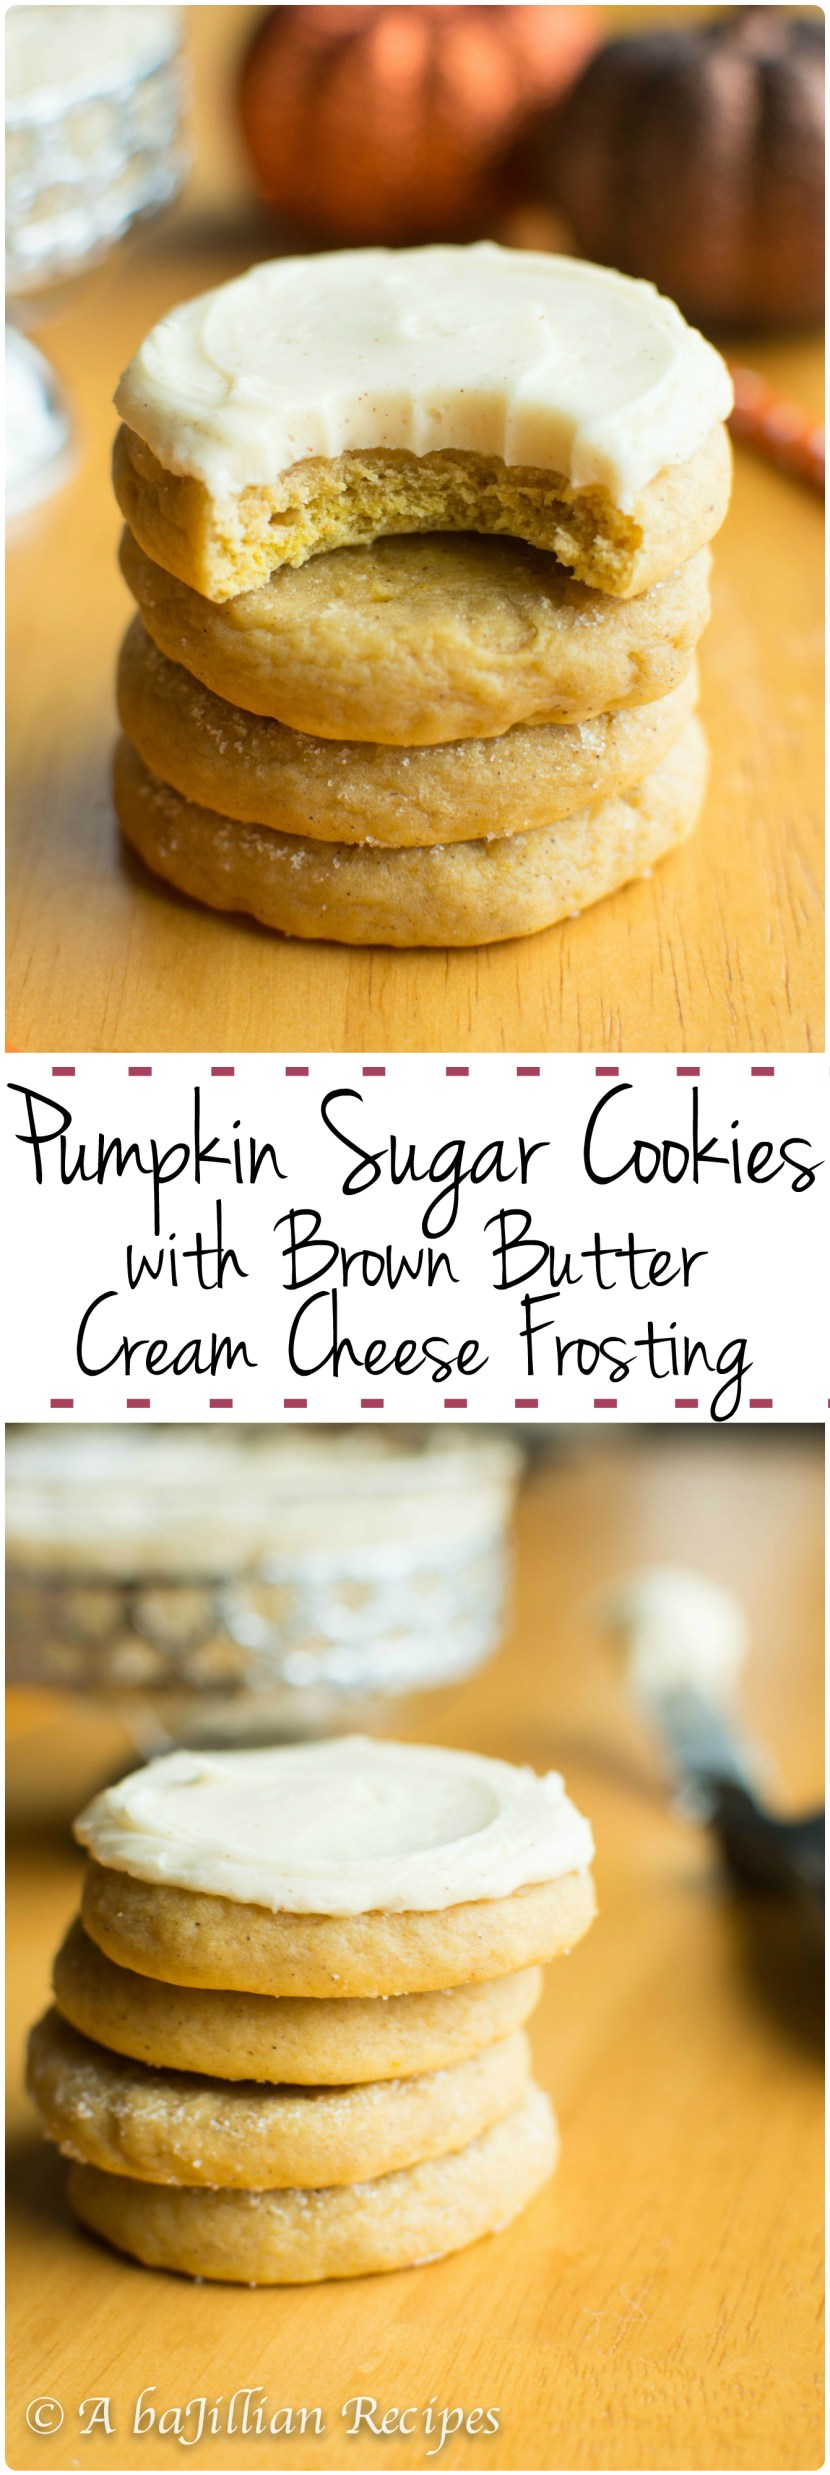 Pumpkin Sugar Cookies w/ Brown Butter Cream Cheese Frosting | A baJillian Recipes